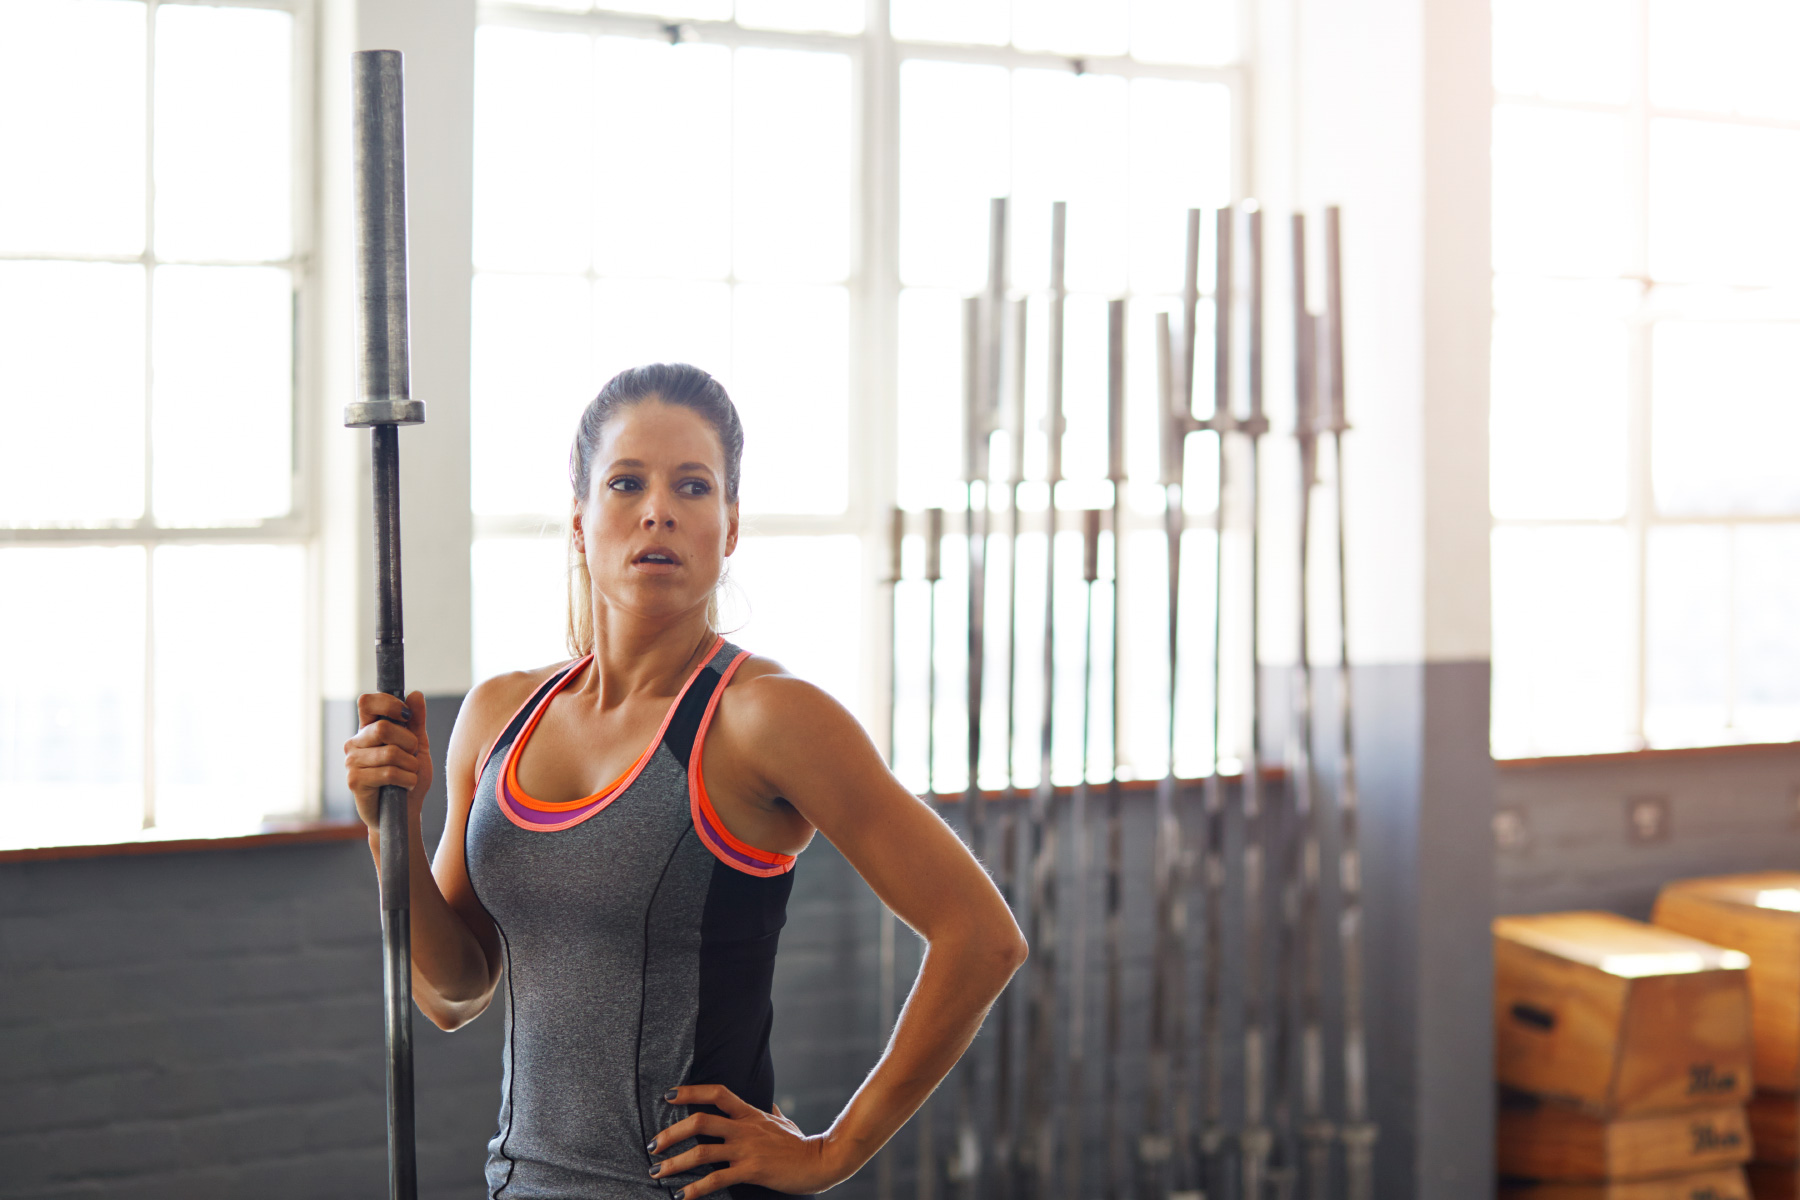 Exhausted woman holding on to barbell in crossfit gym